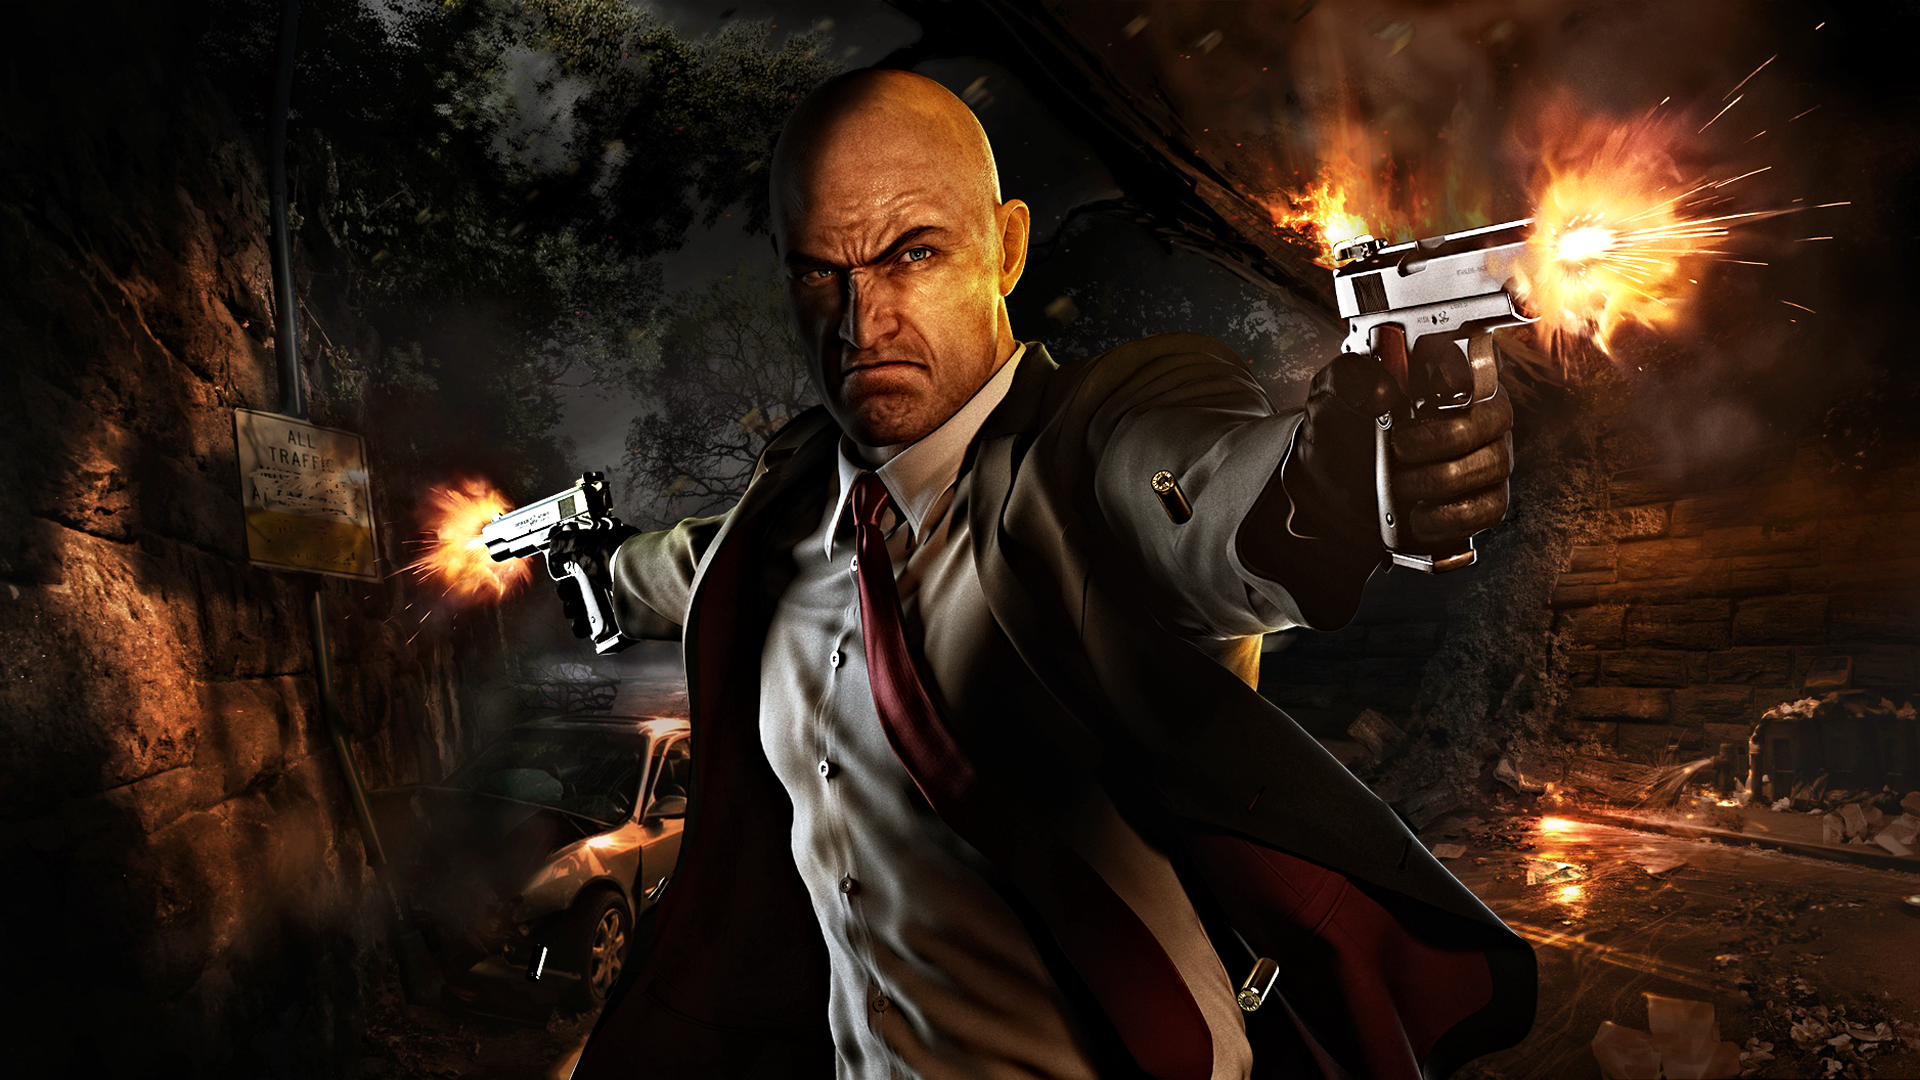 Hitman Absolution Wallpaper HD 1080p2